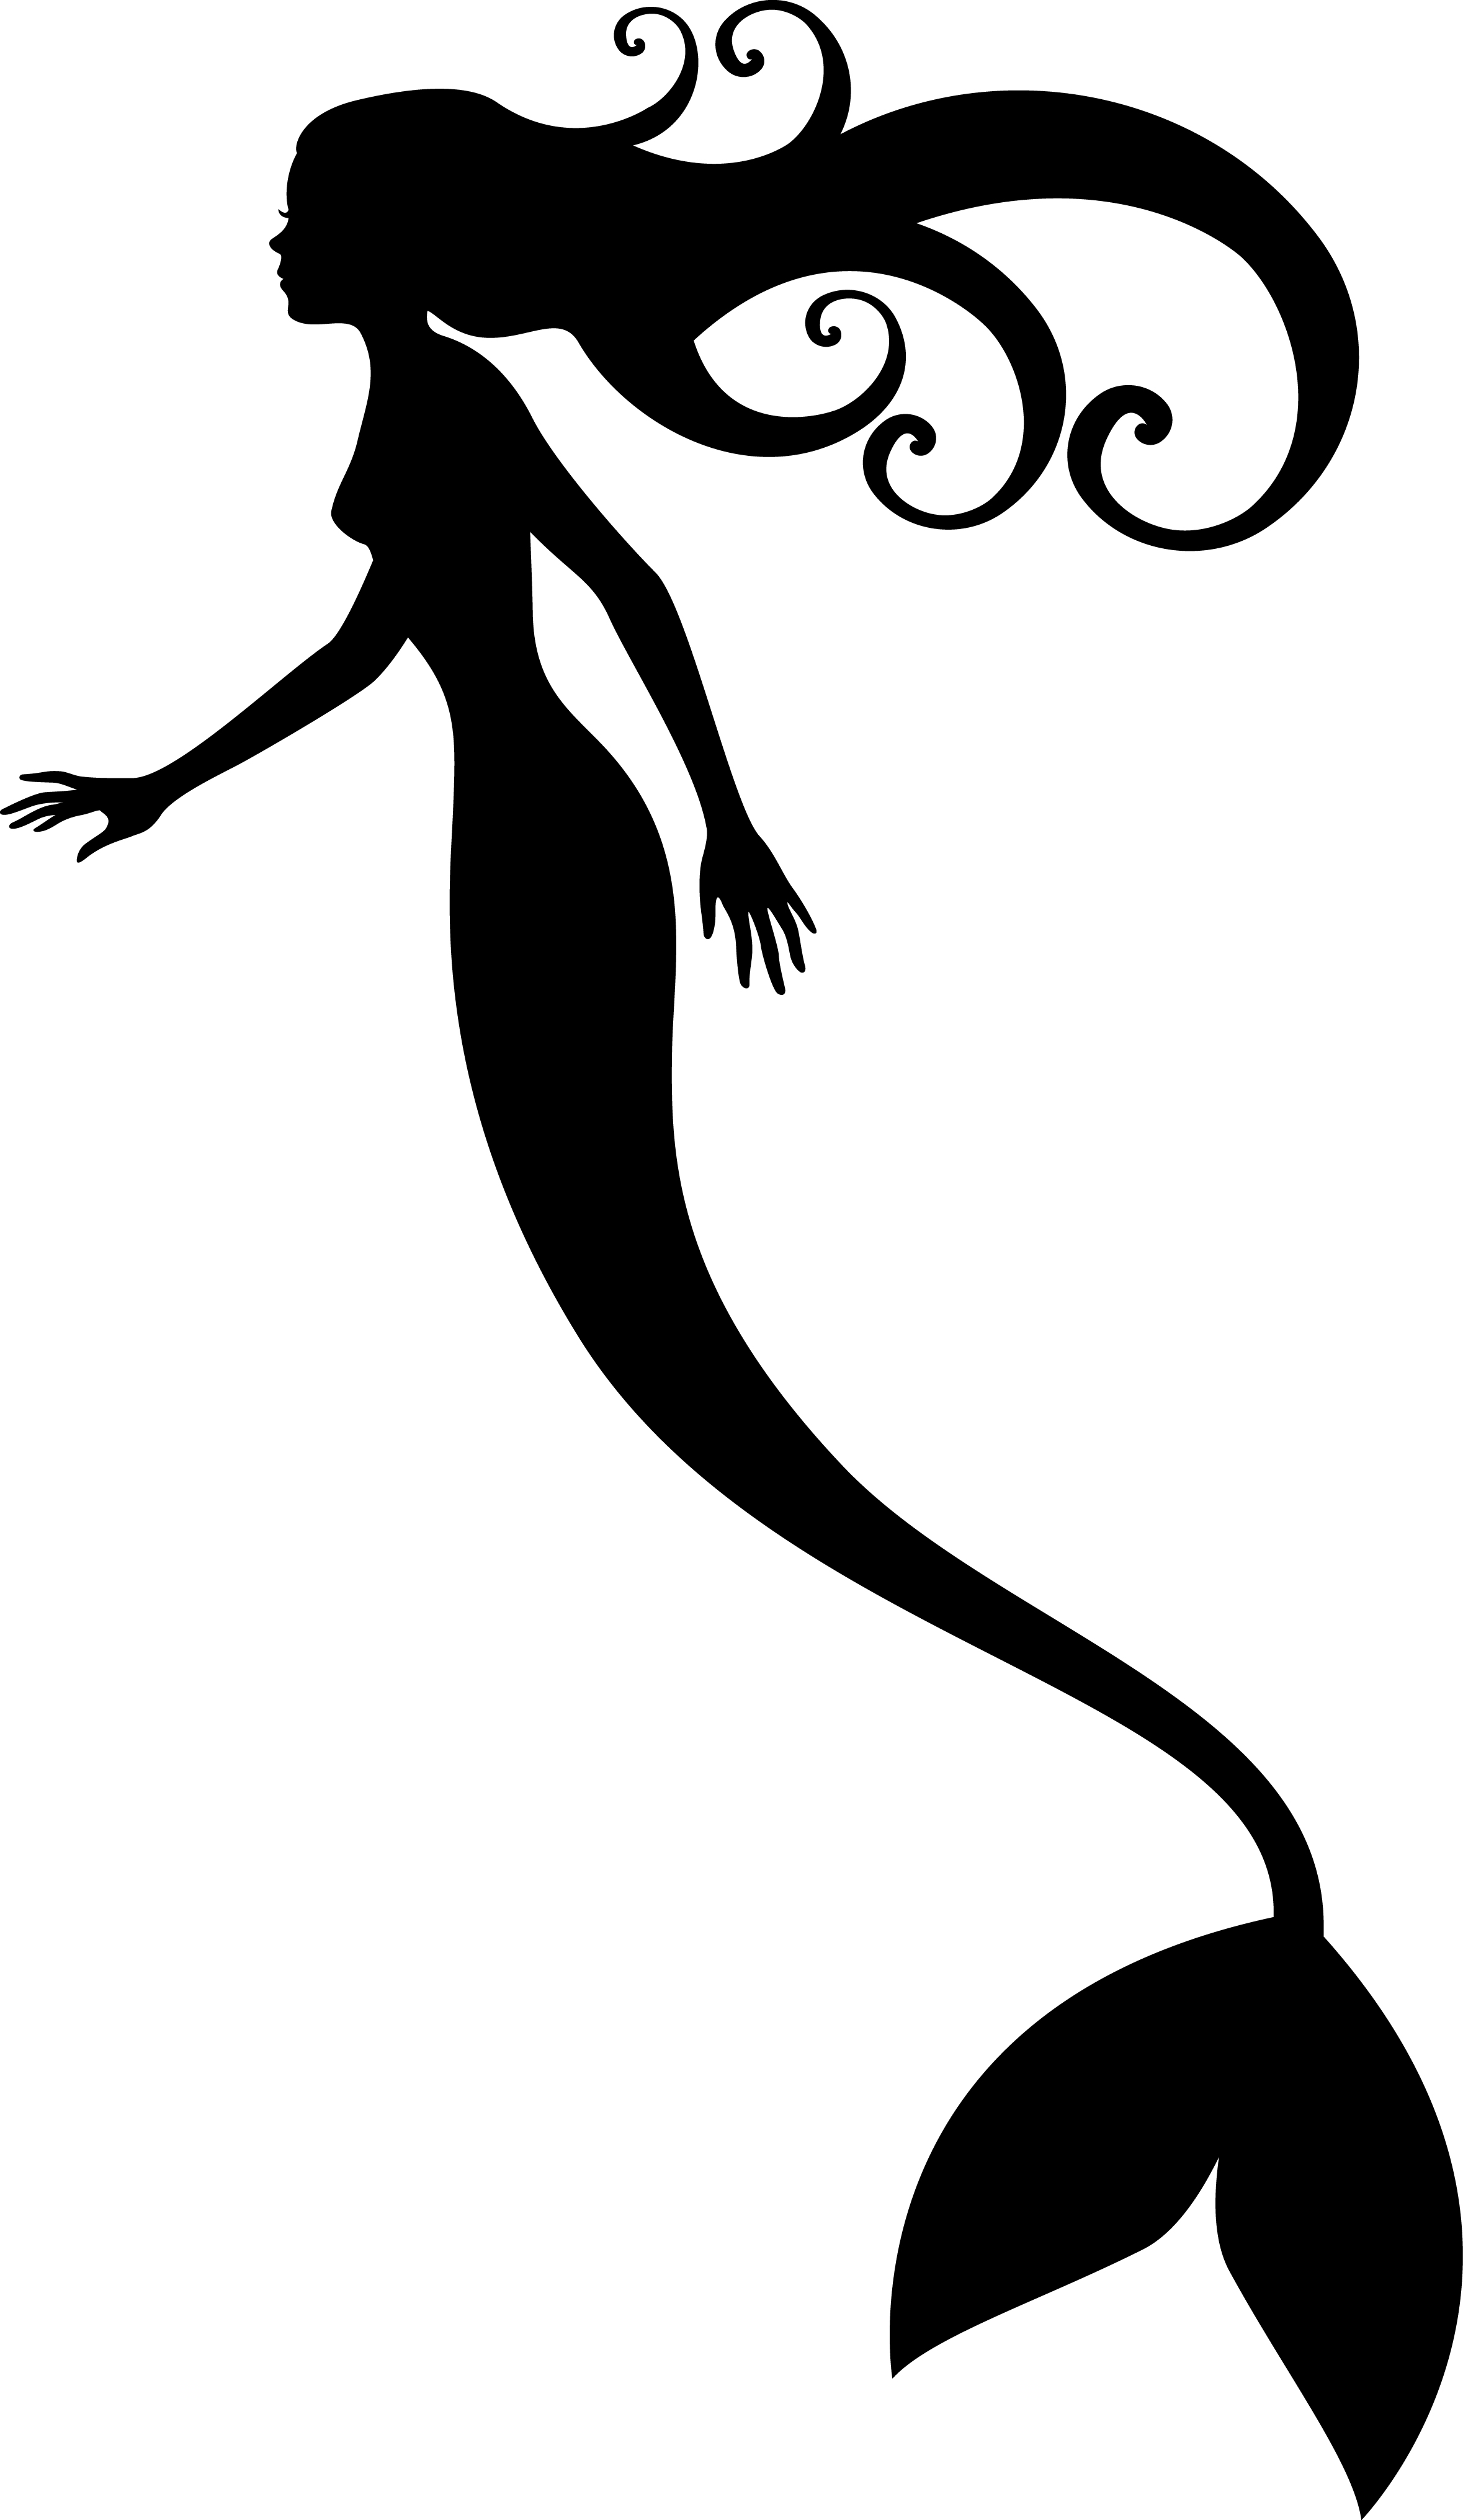 Mermaid Tail Silhouette | Clipart Panda - Free Clipart Images